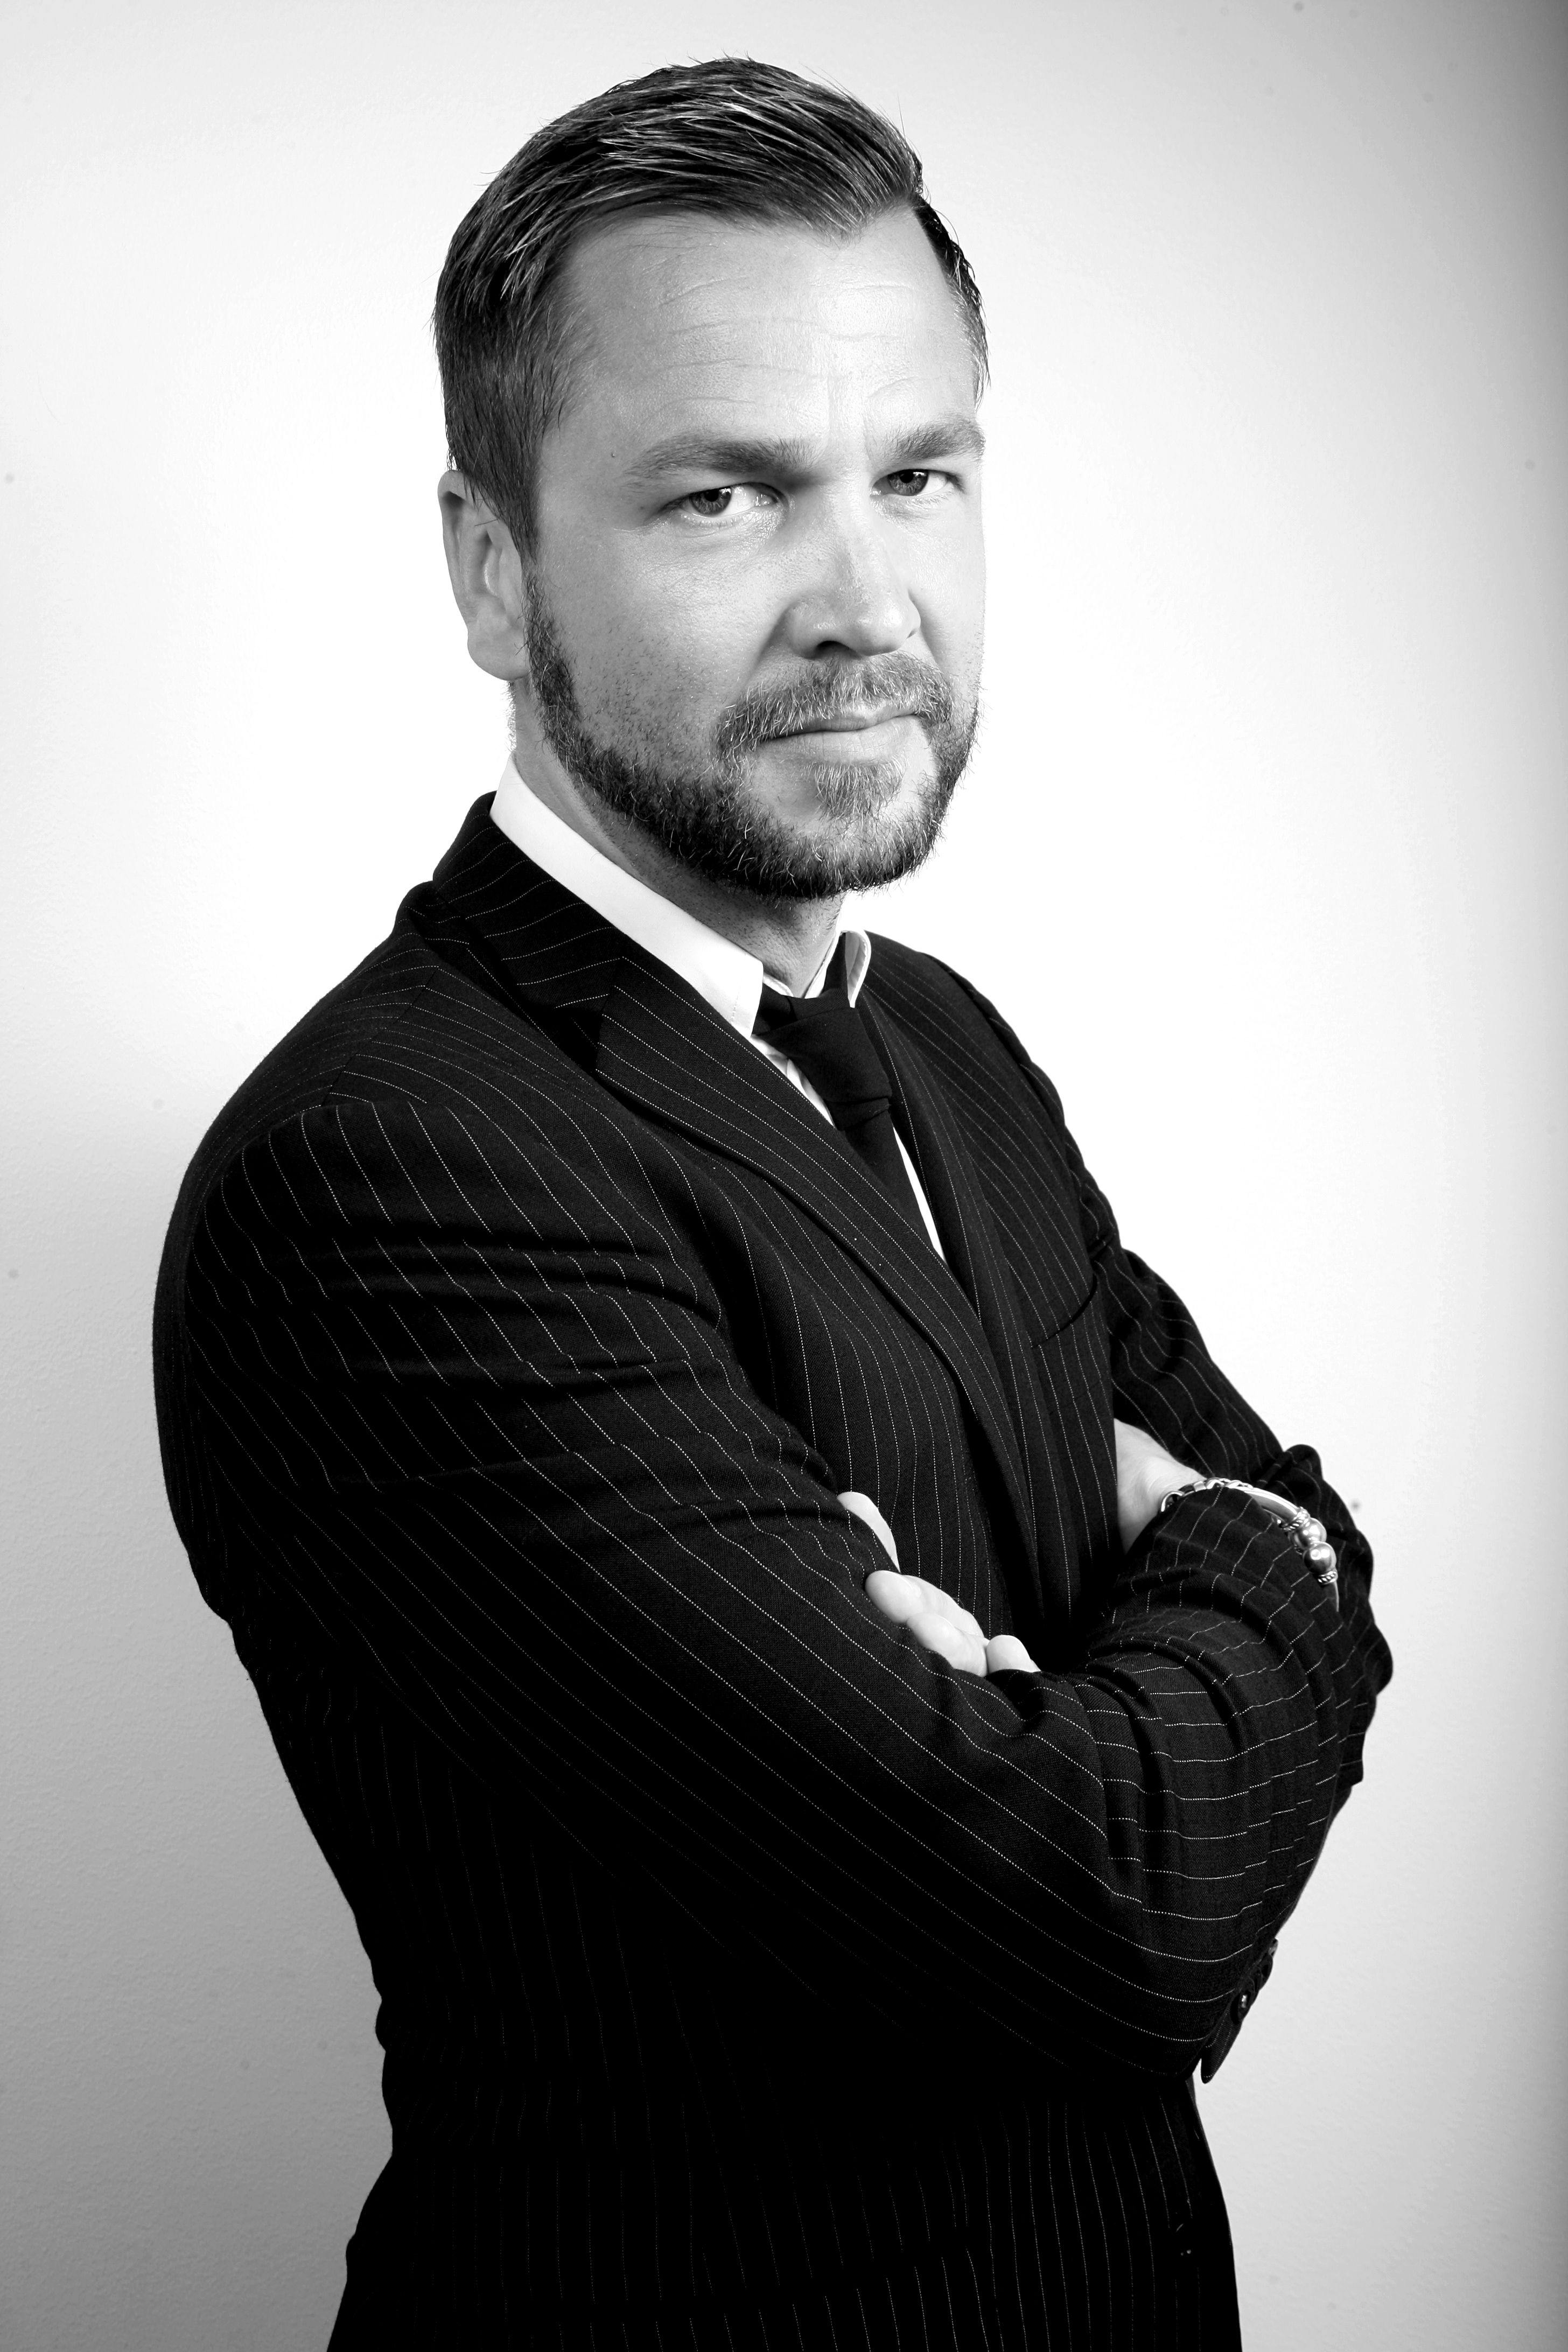 Promo Photo For A Company Ulf Ekberg Works With Called Serendipity